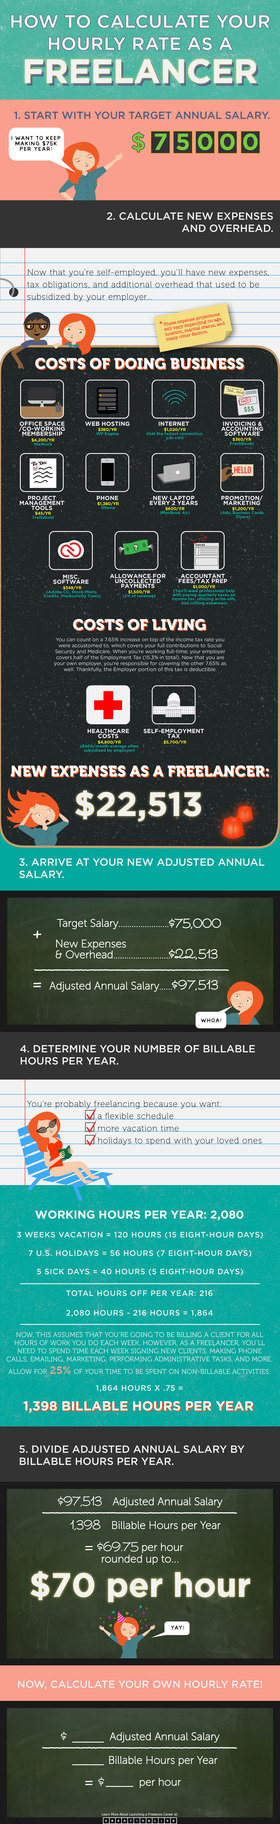 How to calculate your freelance hourly rate infographic by creativelive final article